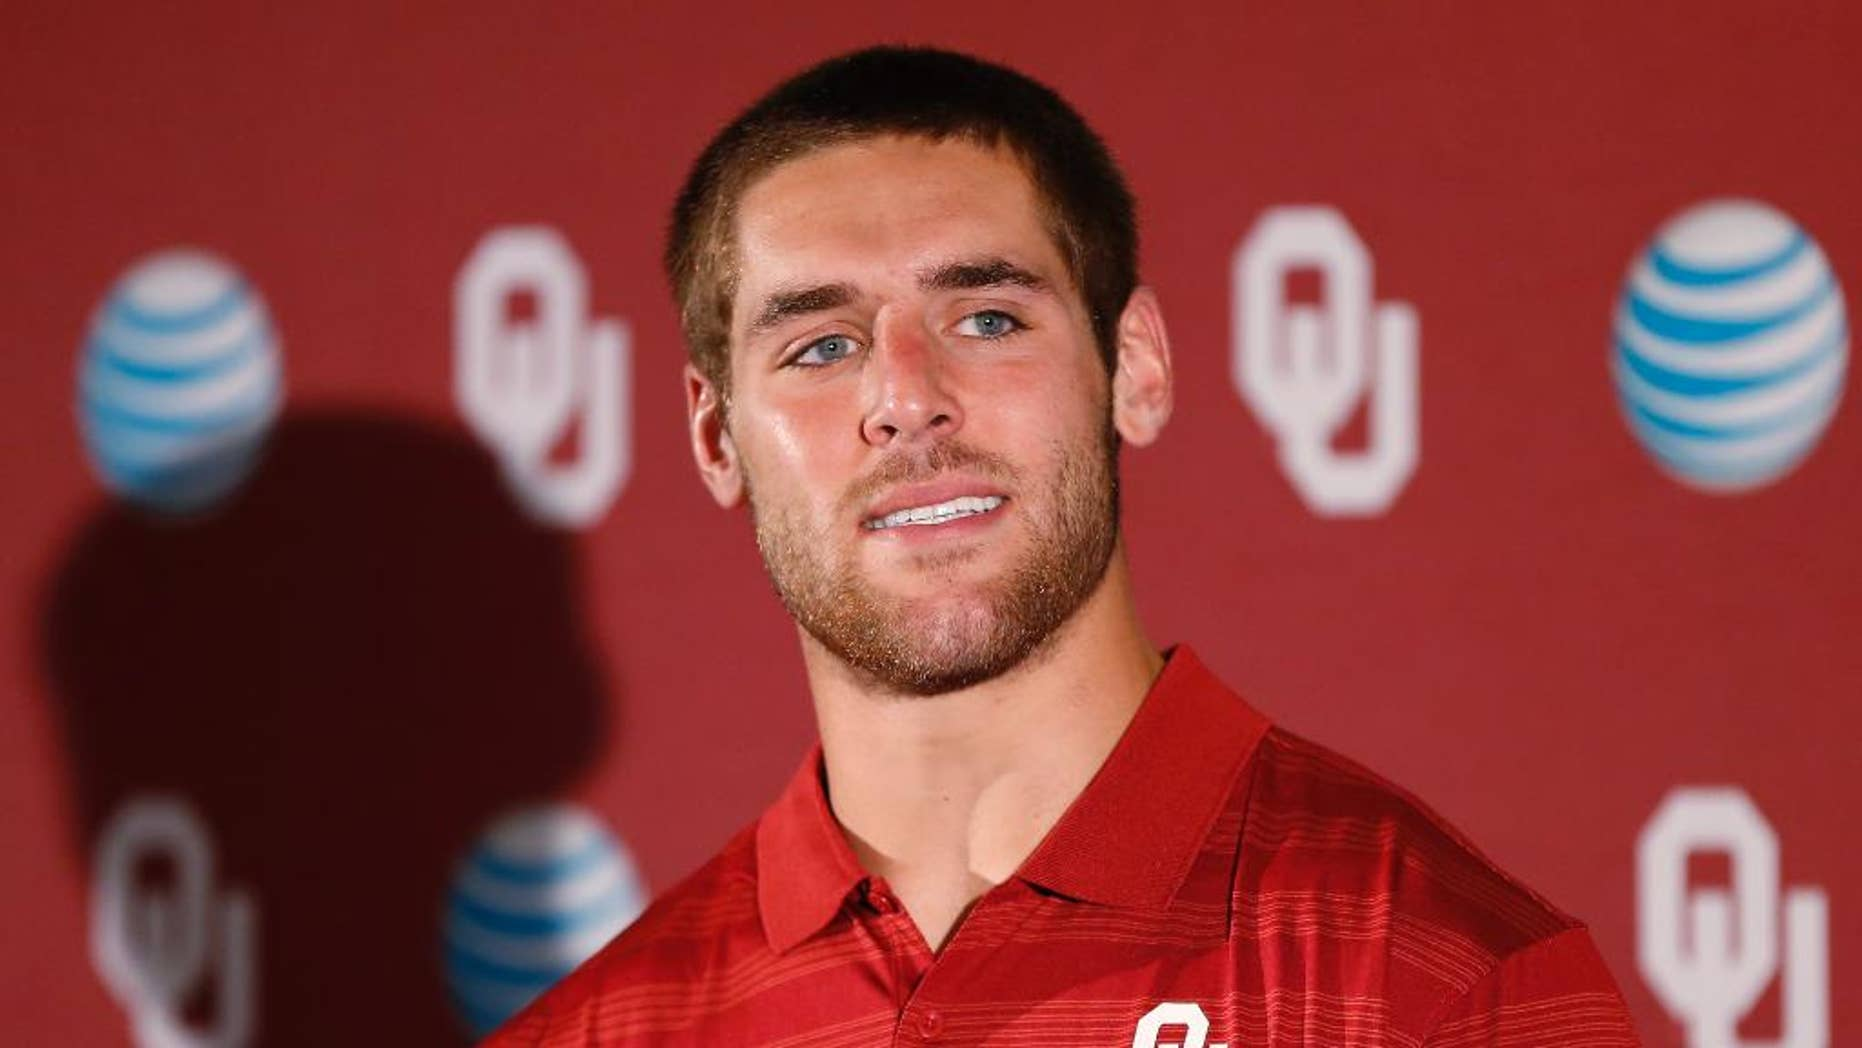 Oklahoma quarterback Trevor Knight answers a question during a news conference in Norman, Okla., Monday, Aug. 25, 2014. Some uncertainties have cleared up as No. 4 Oklahoma prepares to open the season Saturday against Louisiana Tech. (AP Photo/Sue Ogrocki)